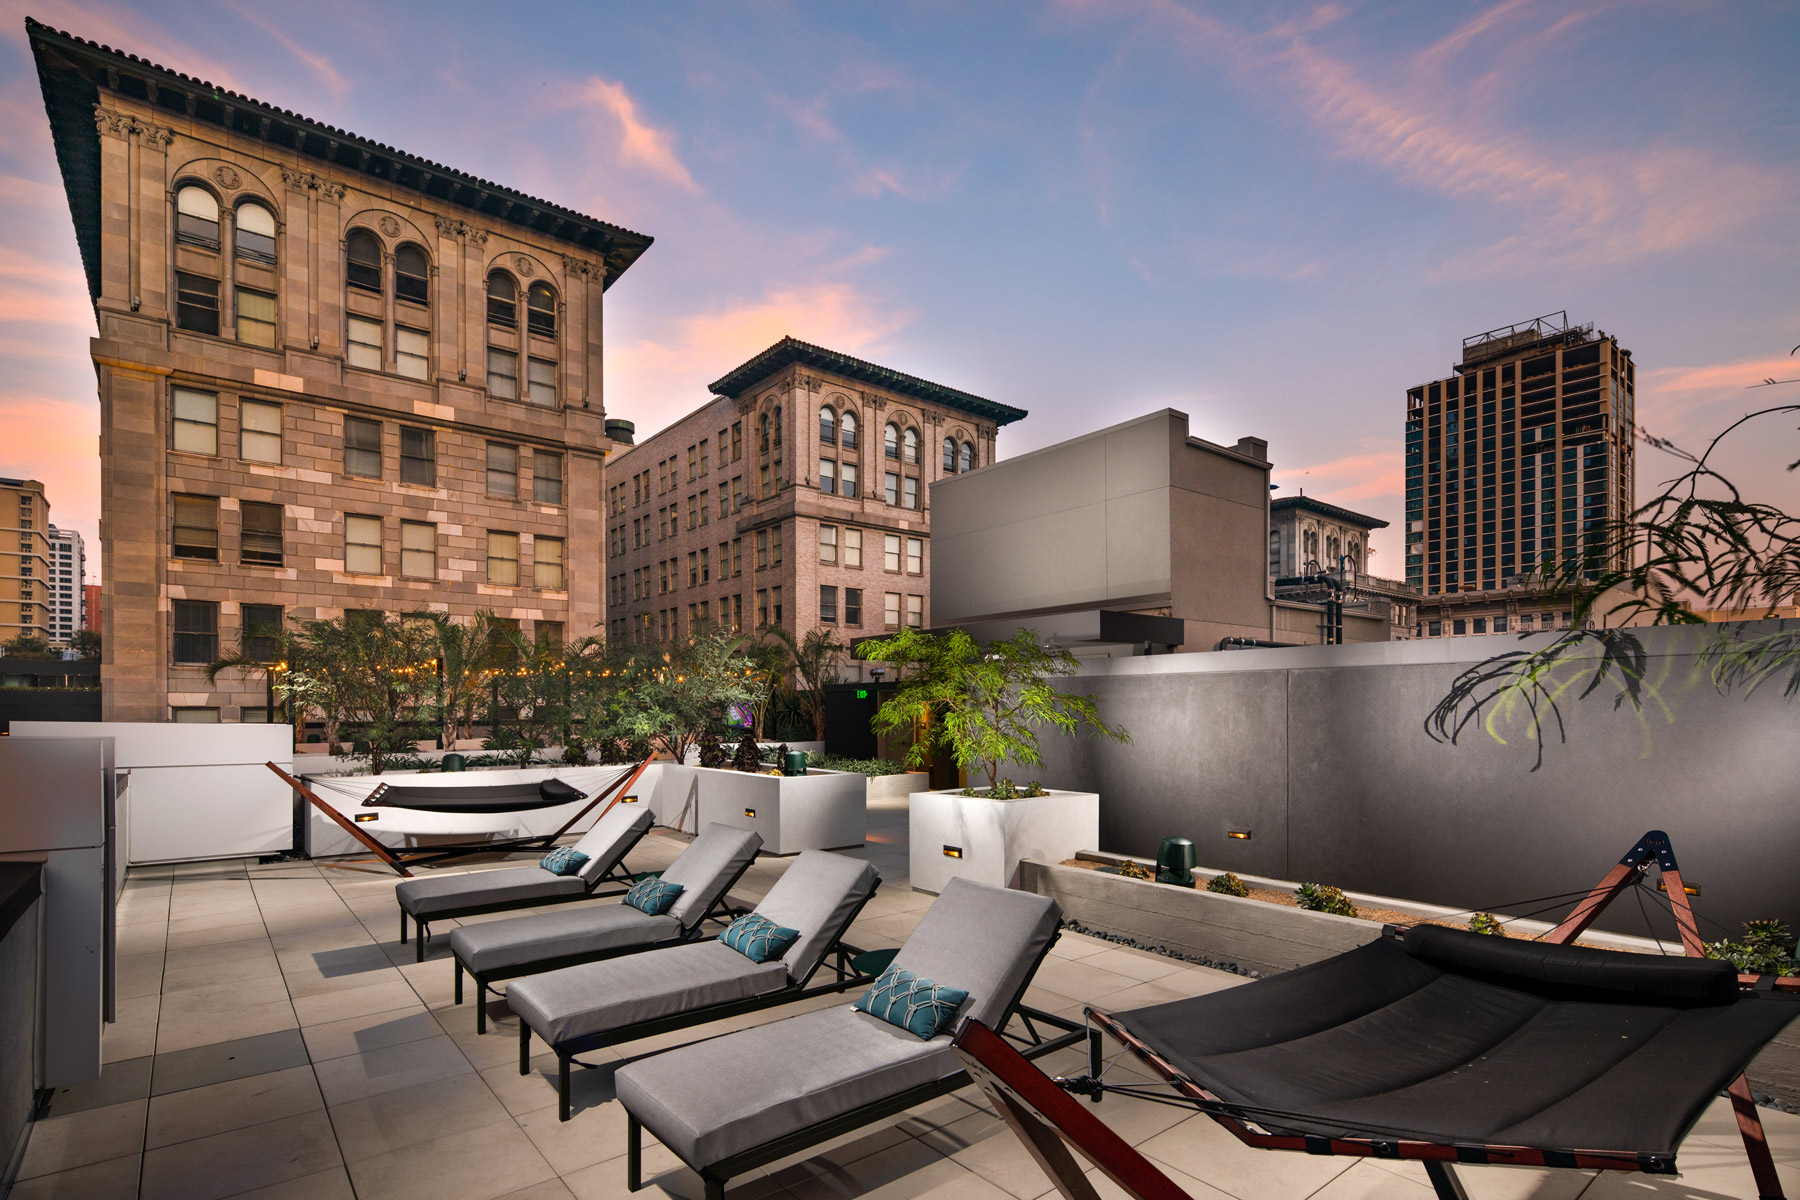 Trademark Apartments outdoor space with reclining chairs